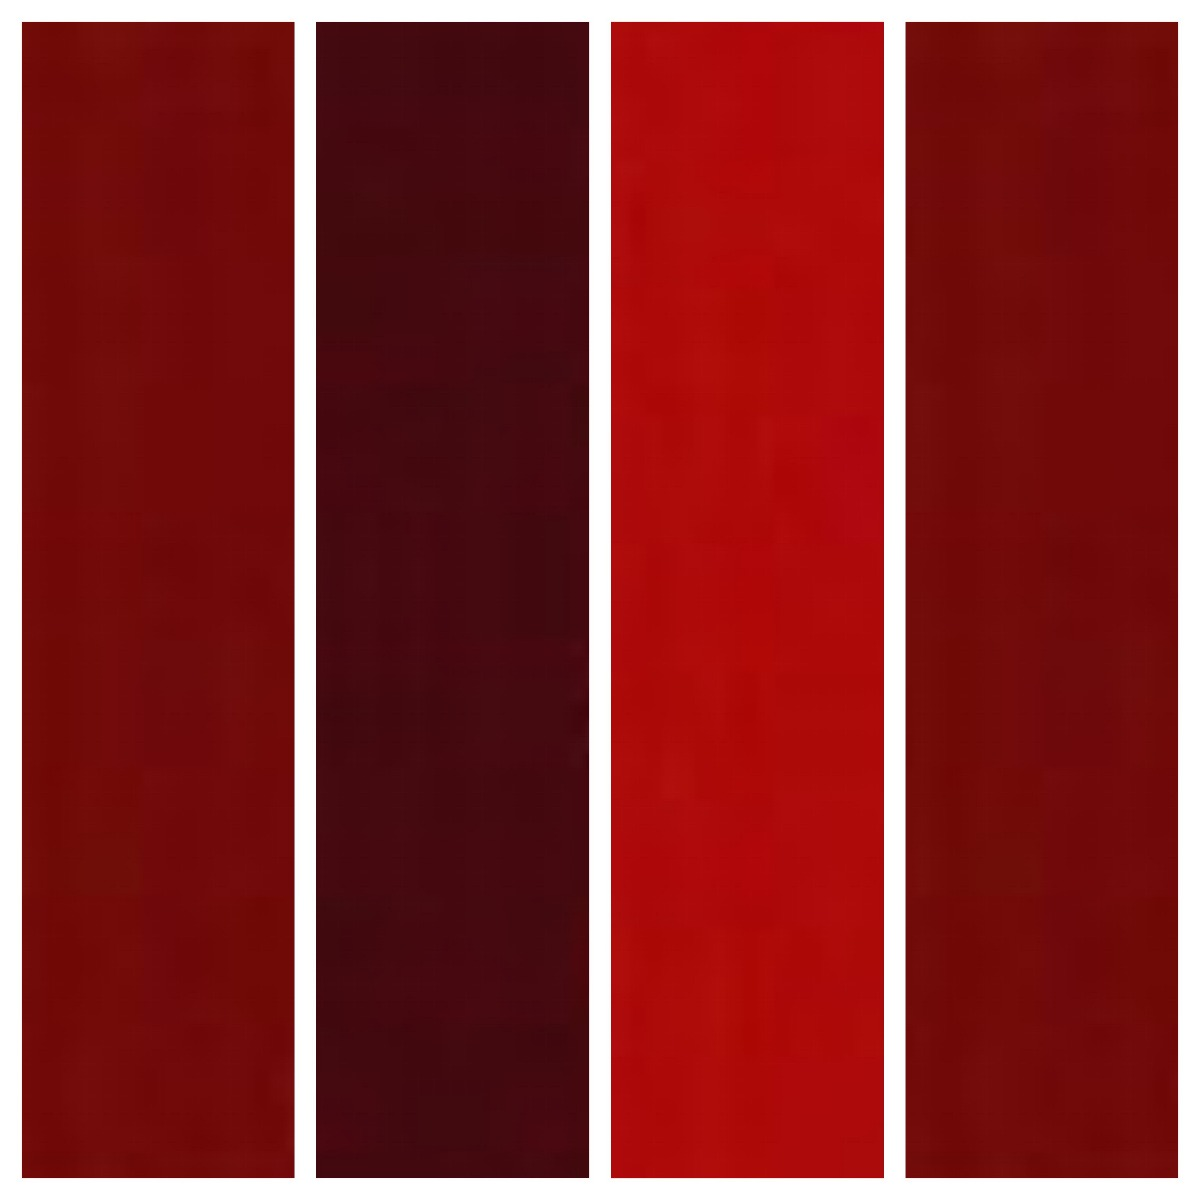 Big Chill custom colors: 3003 Ruby Red, 3005 Wine Red, 3002 Carmine Red, 3011 Brown Red